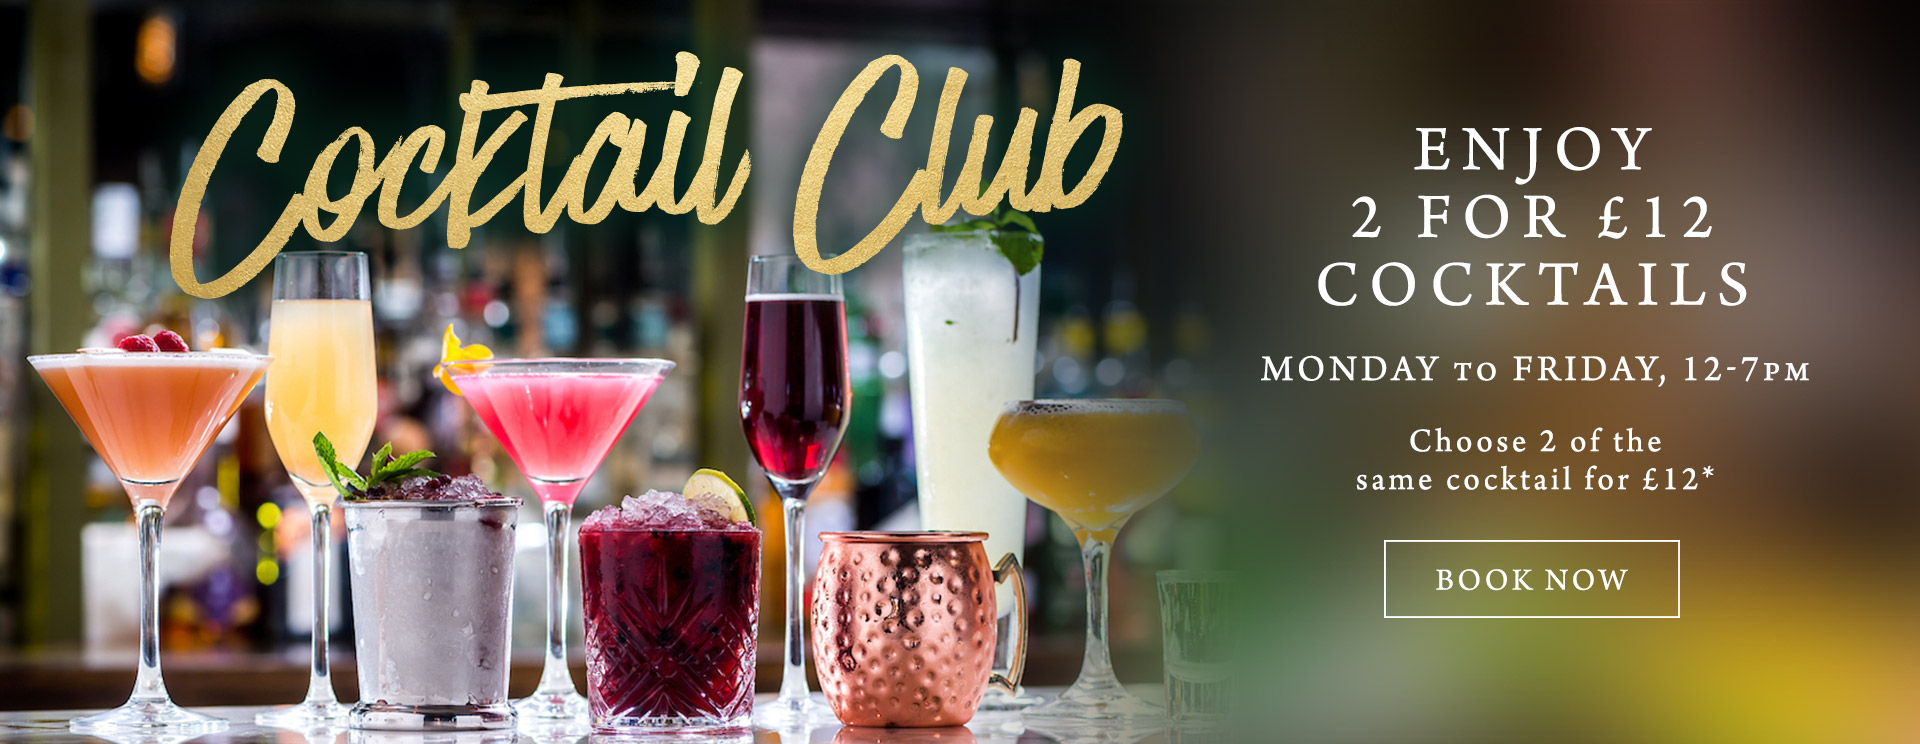 2 for £12 cocktails at The Pheasant